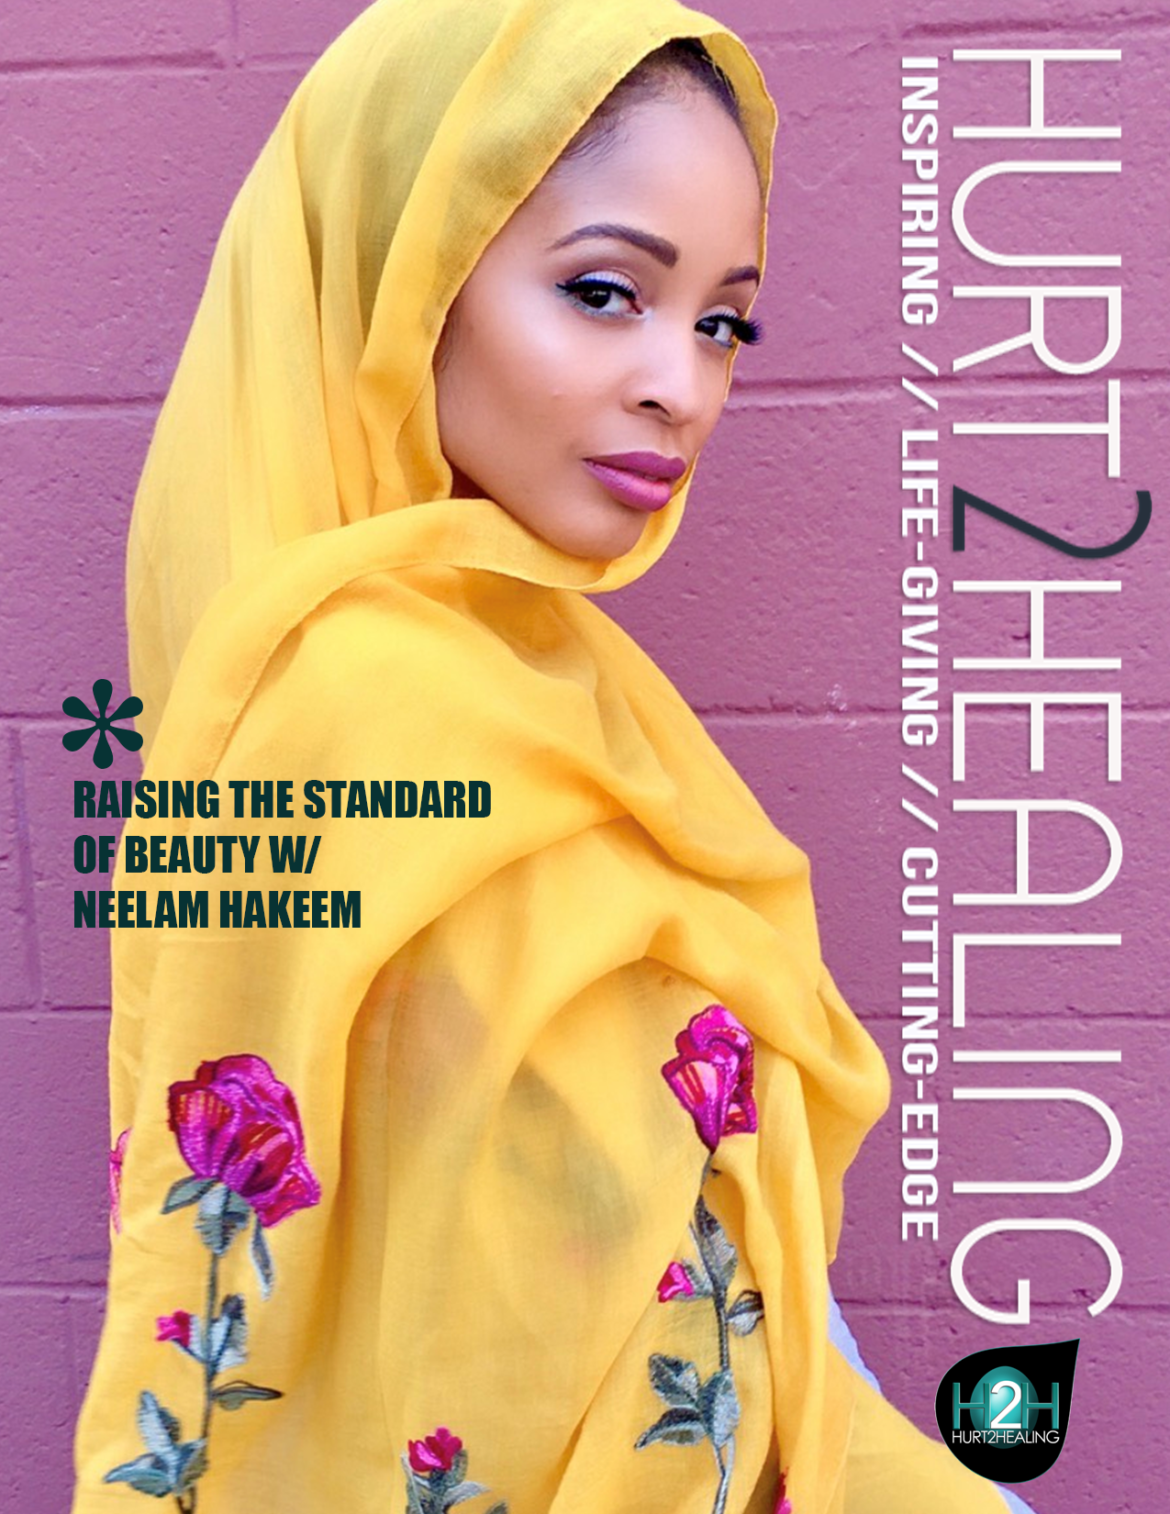 Raising the Standard of Beauty: The Exclusive with Neelam Hakeem